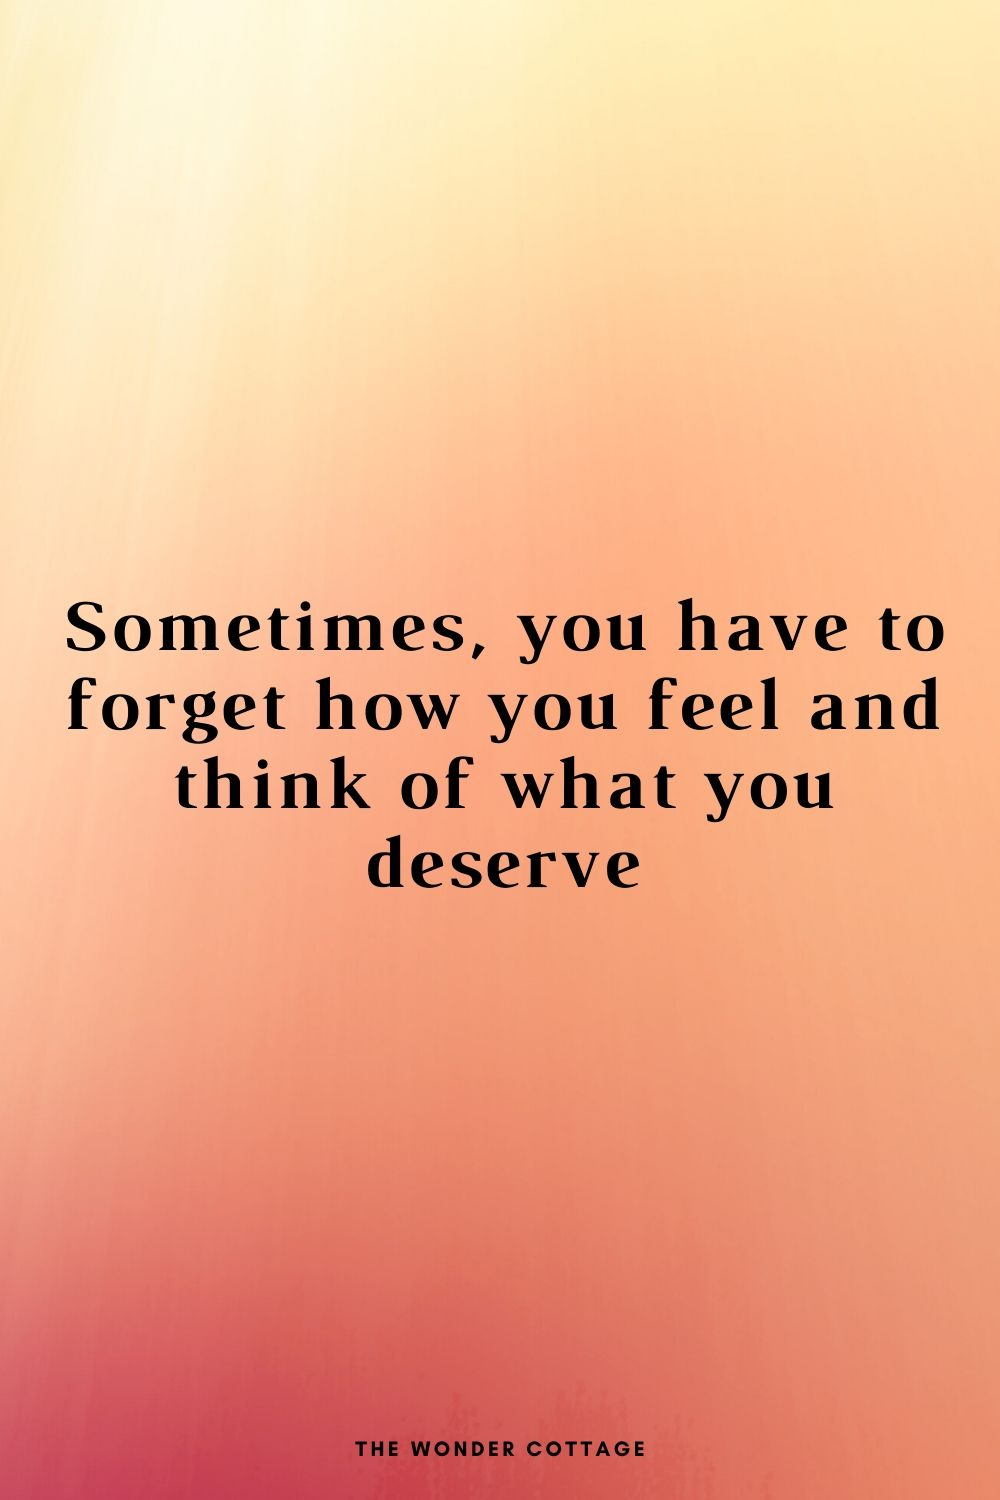 forget how you feel, think of what you deserve